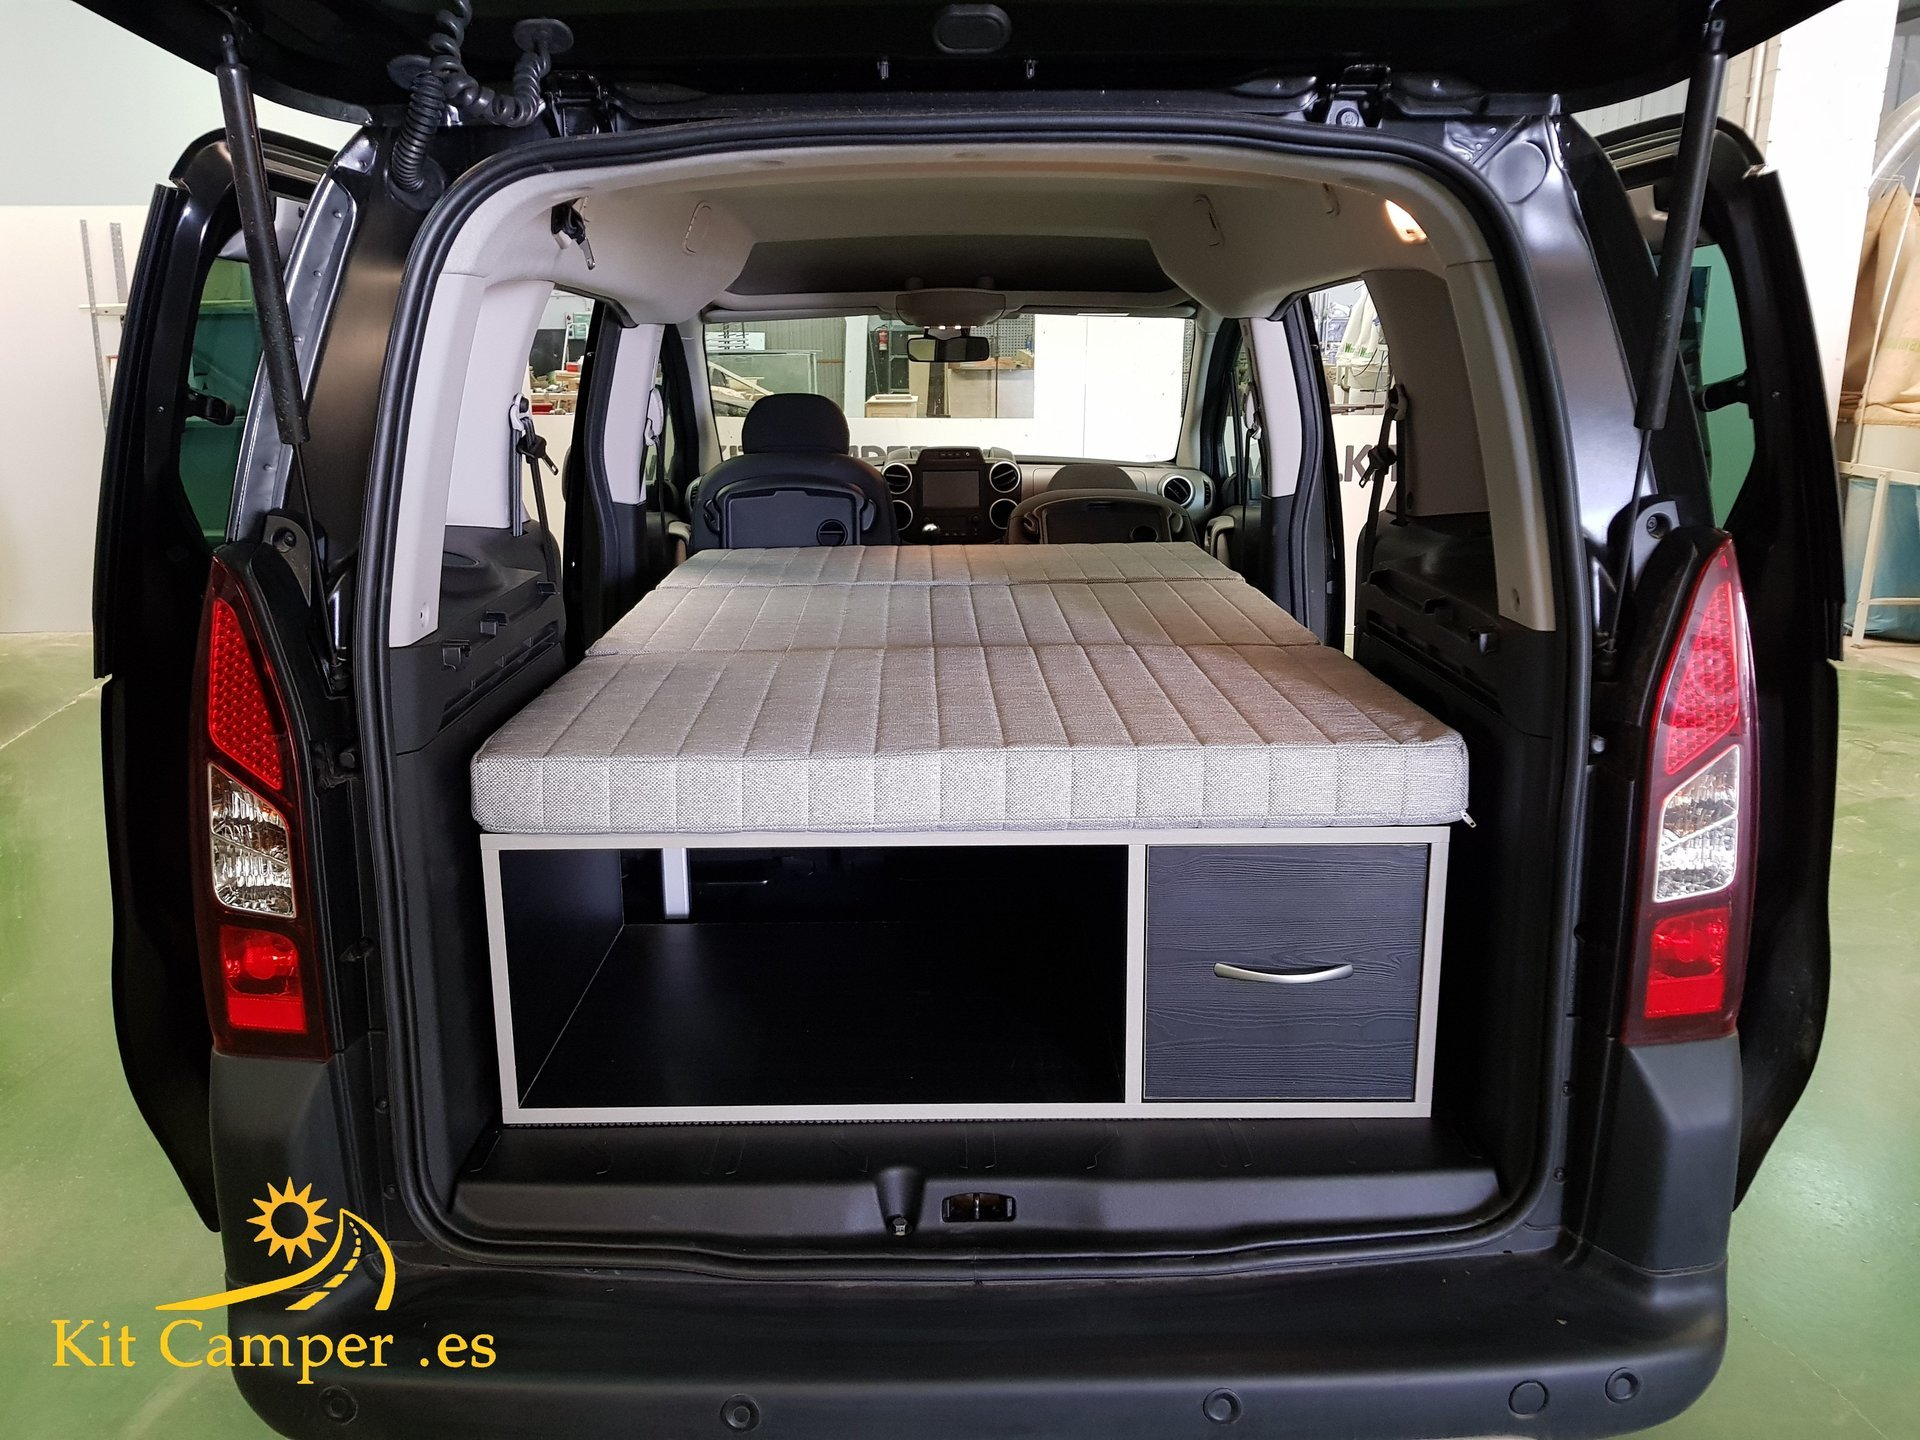 Mueble Camper Berlingo Mueble Camper Para Berlingo, Kit Camper Para Berlingo